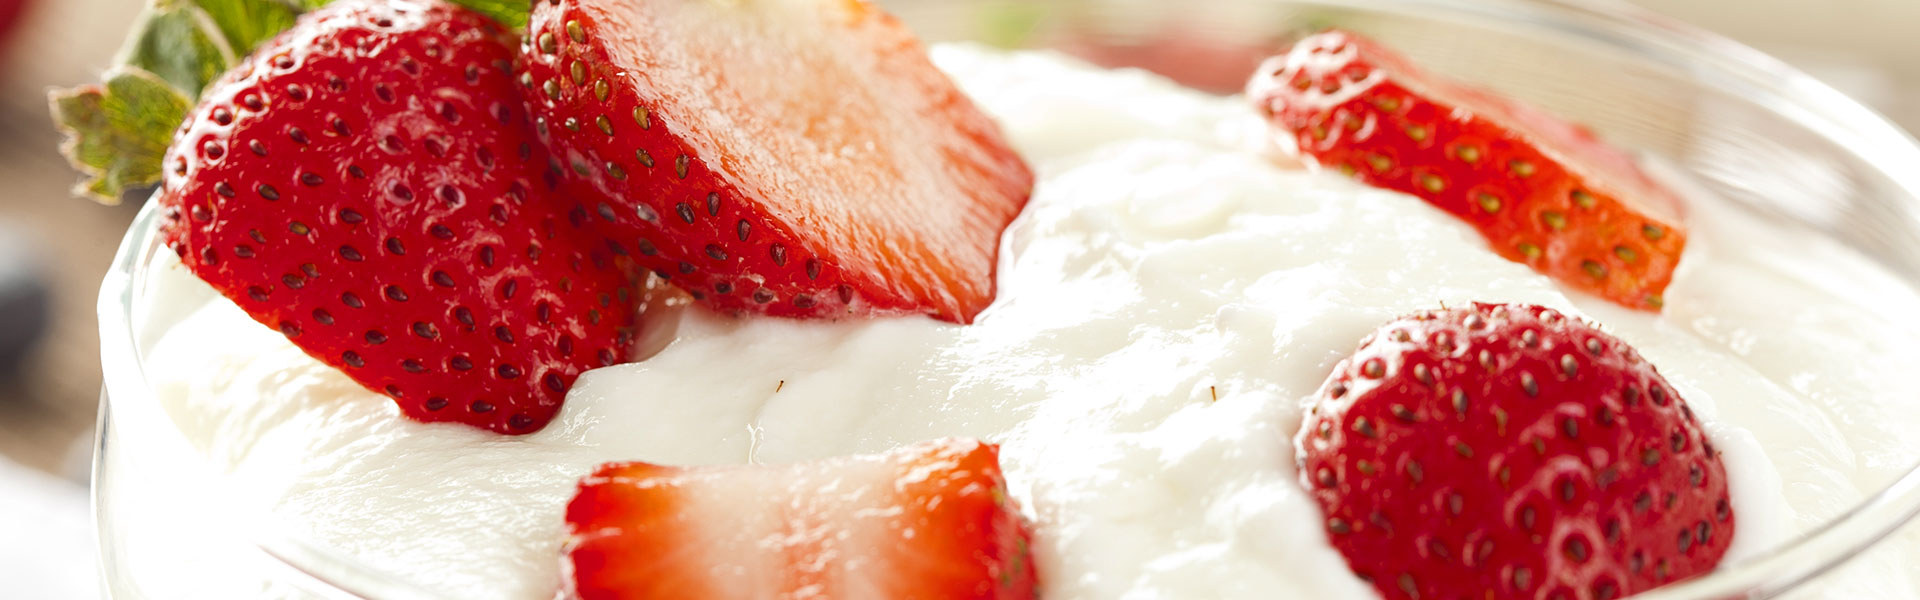 Creamy-Yogurt-with-strawberries